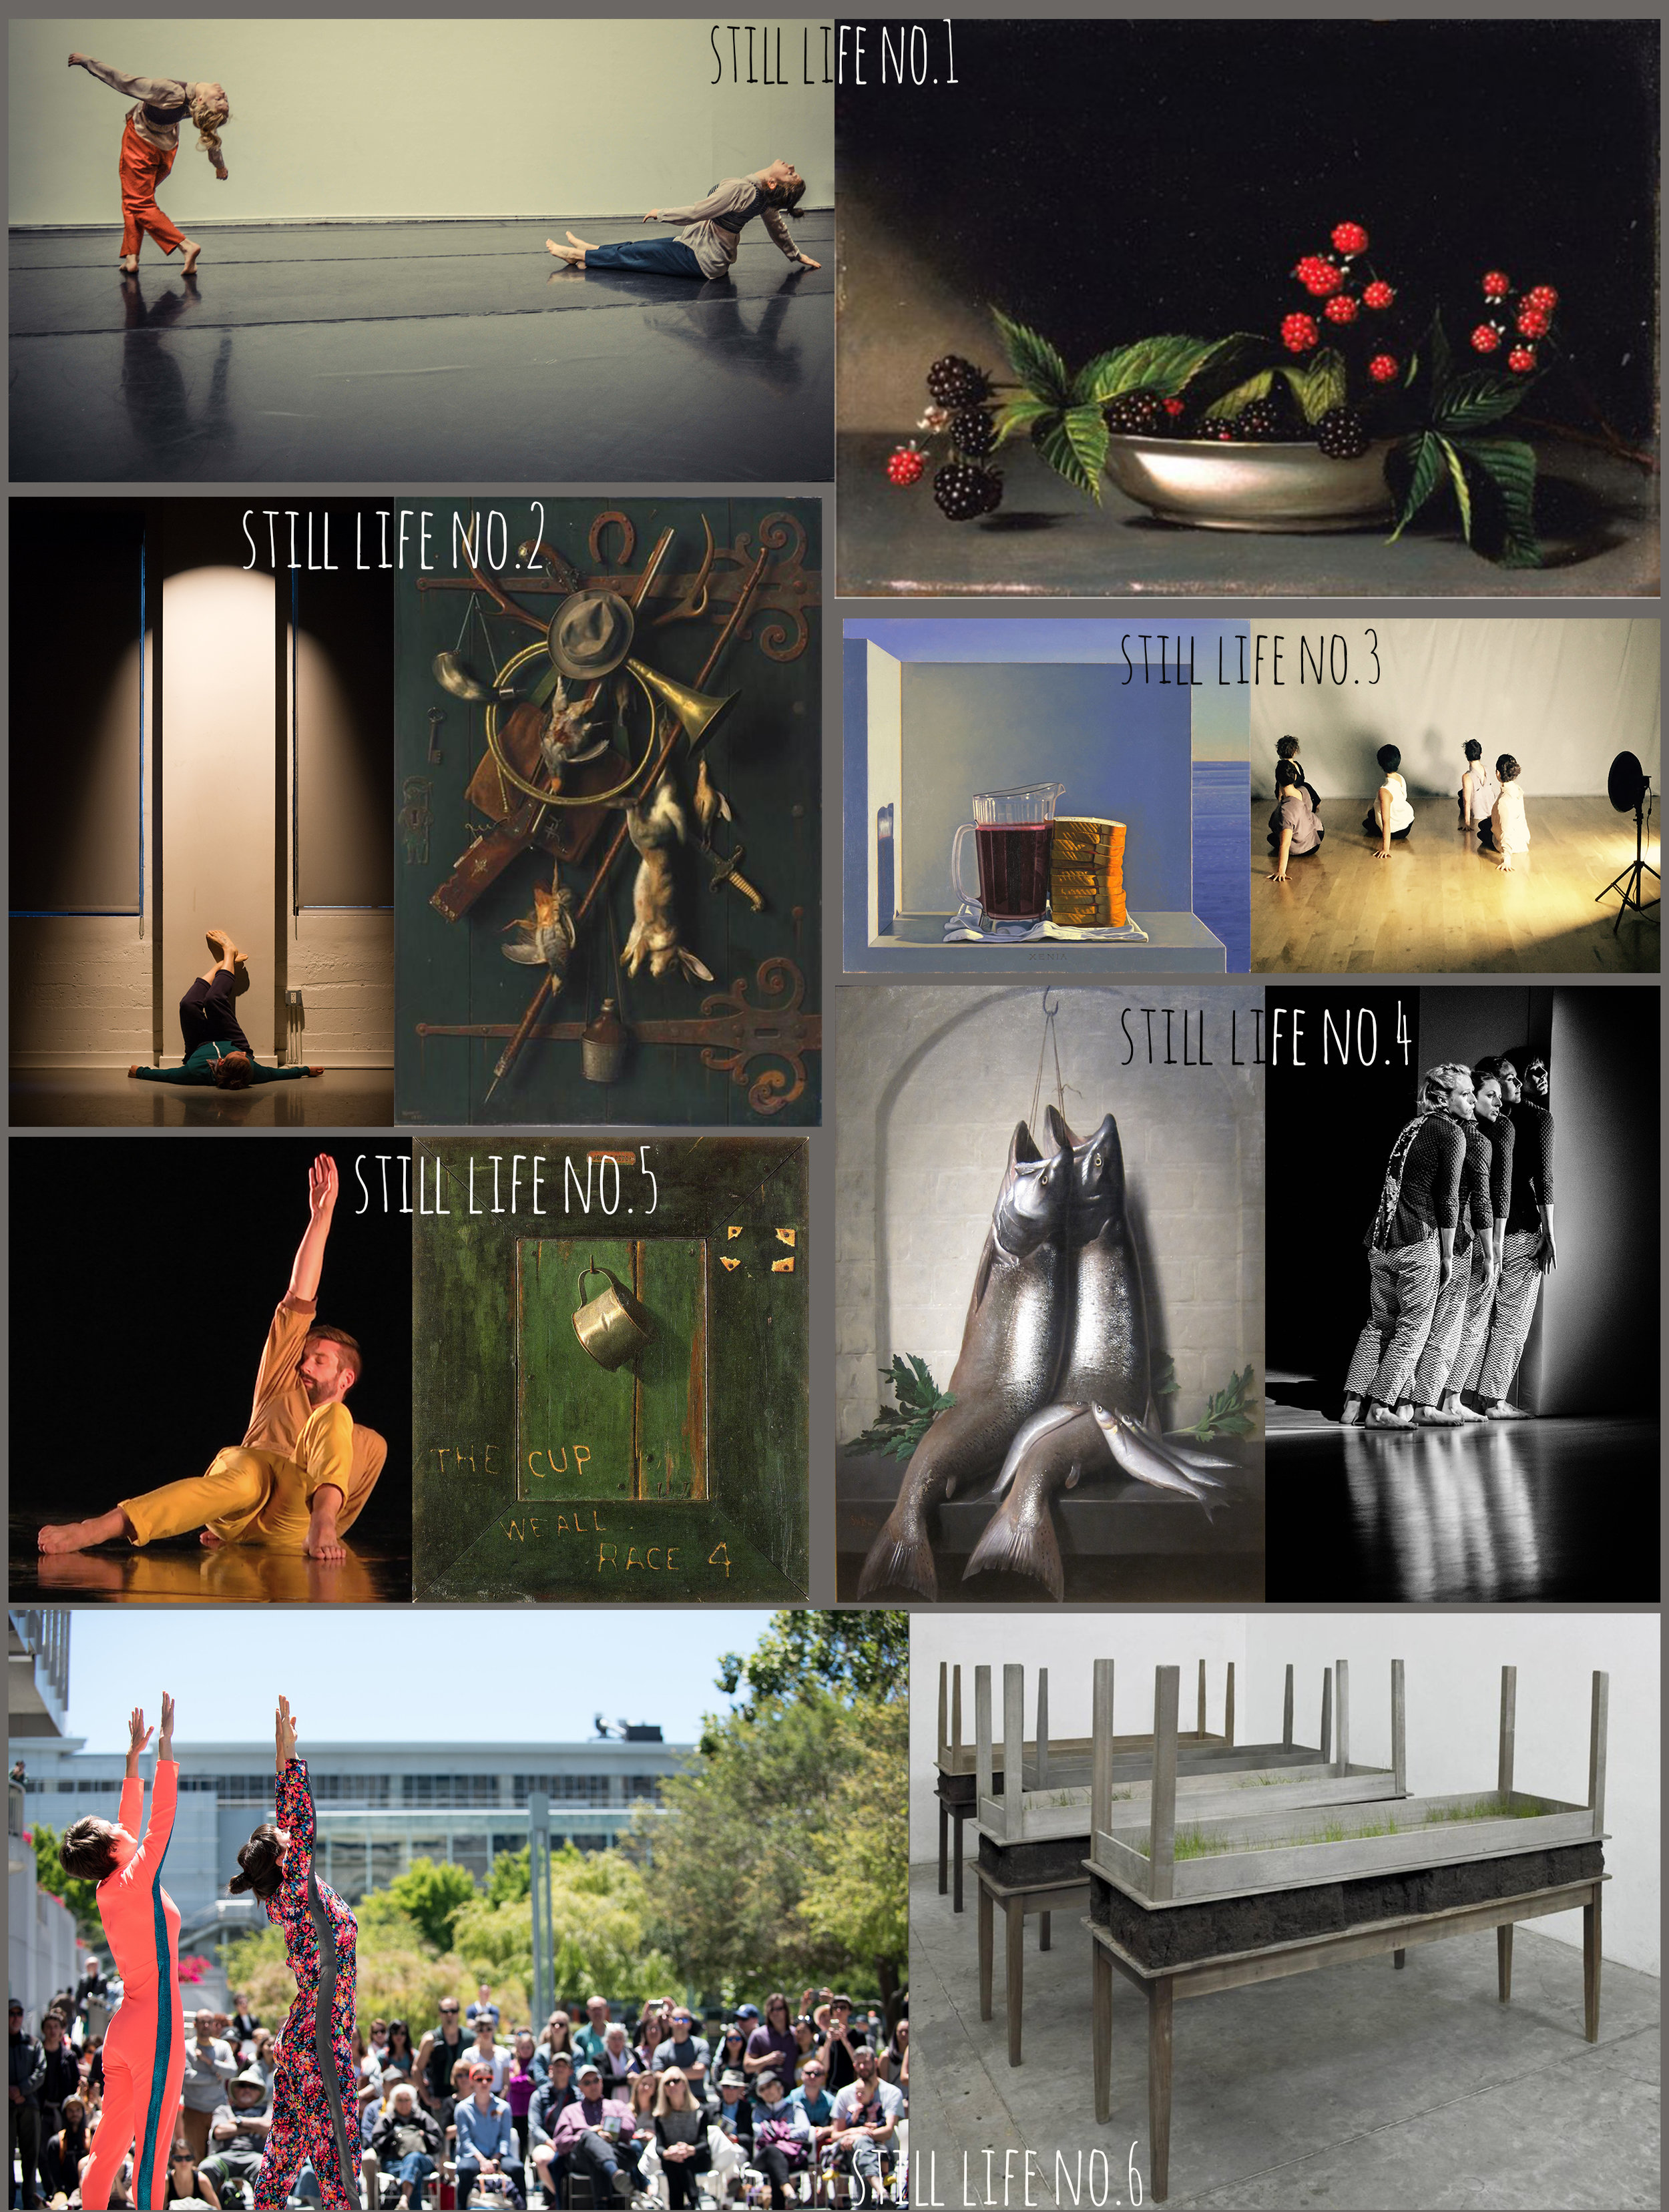 SSC's collage depicting still life paintings/instillations used as inspiration for correlating dance-works.